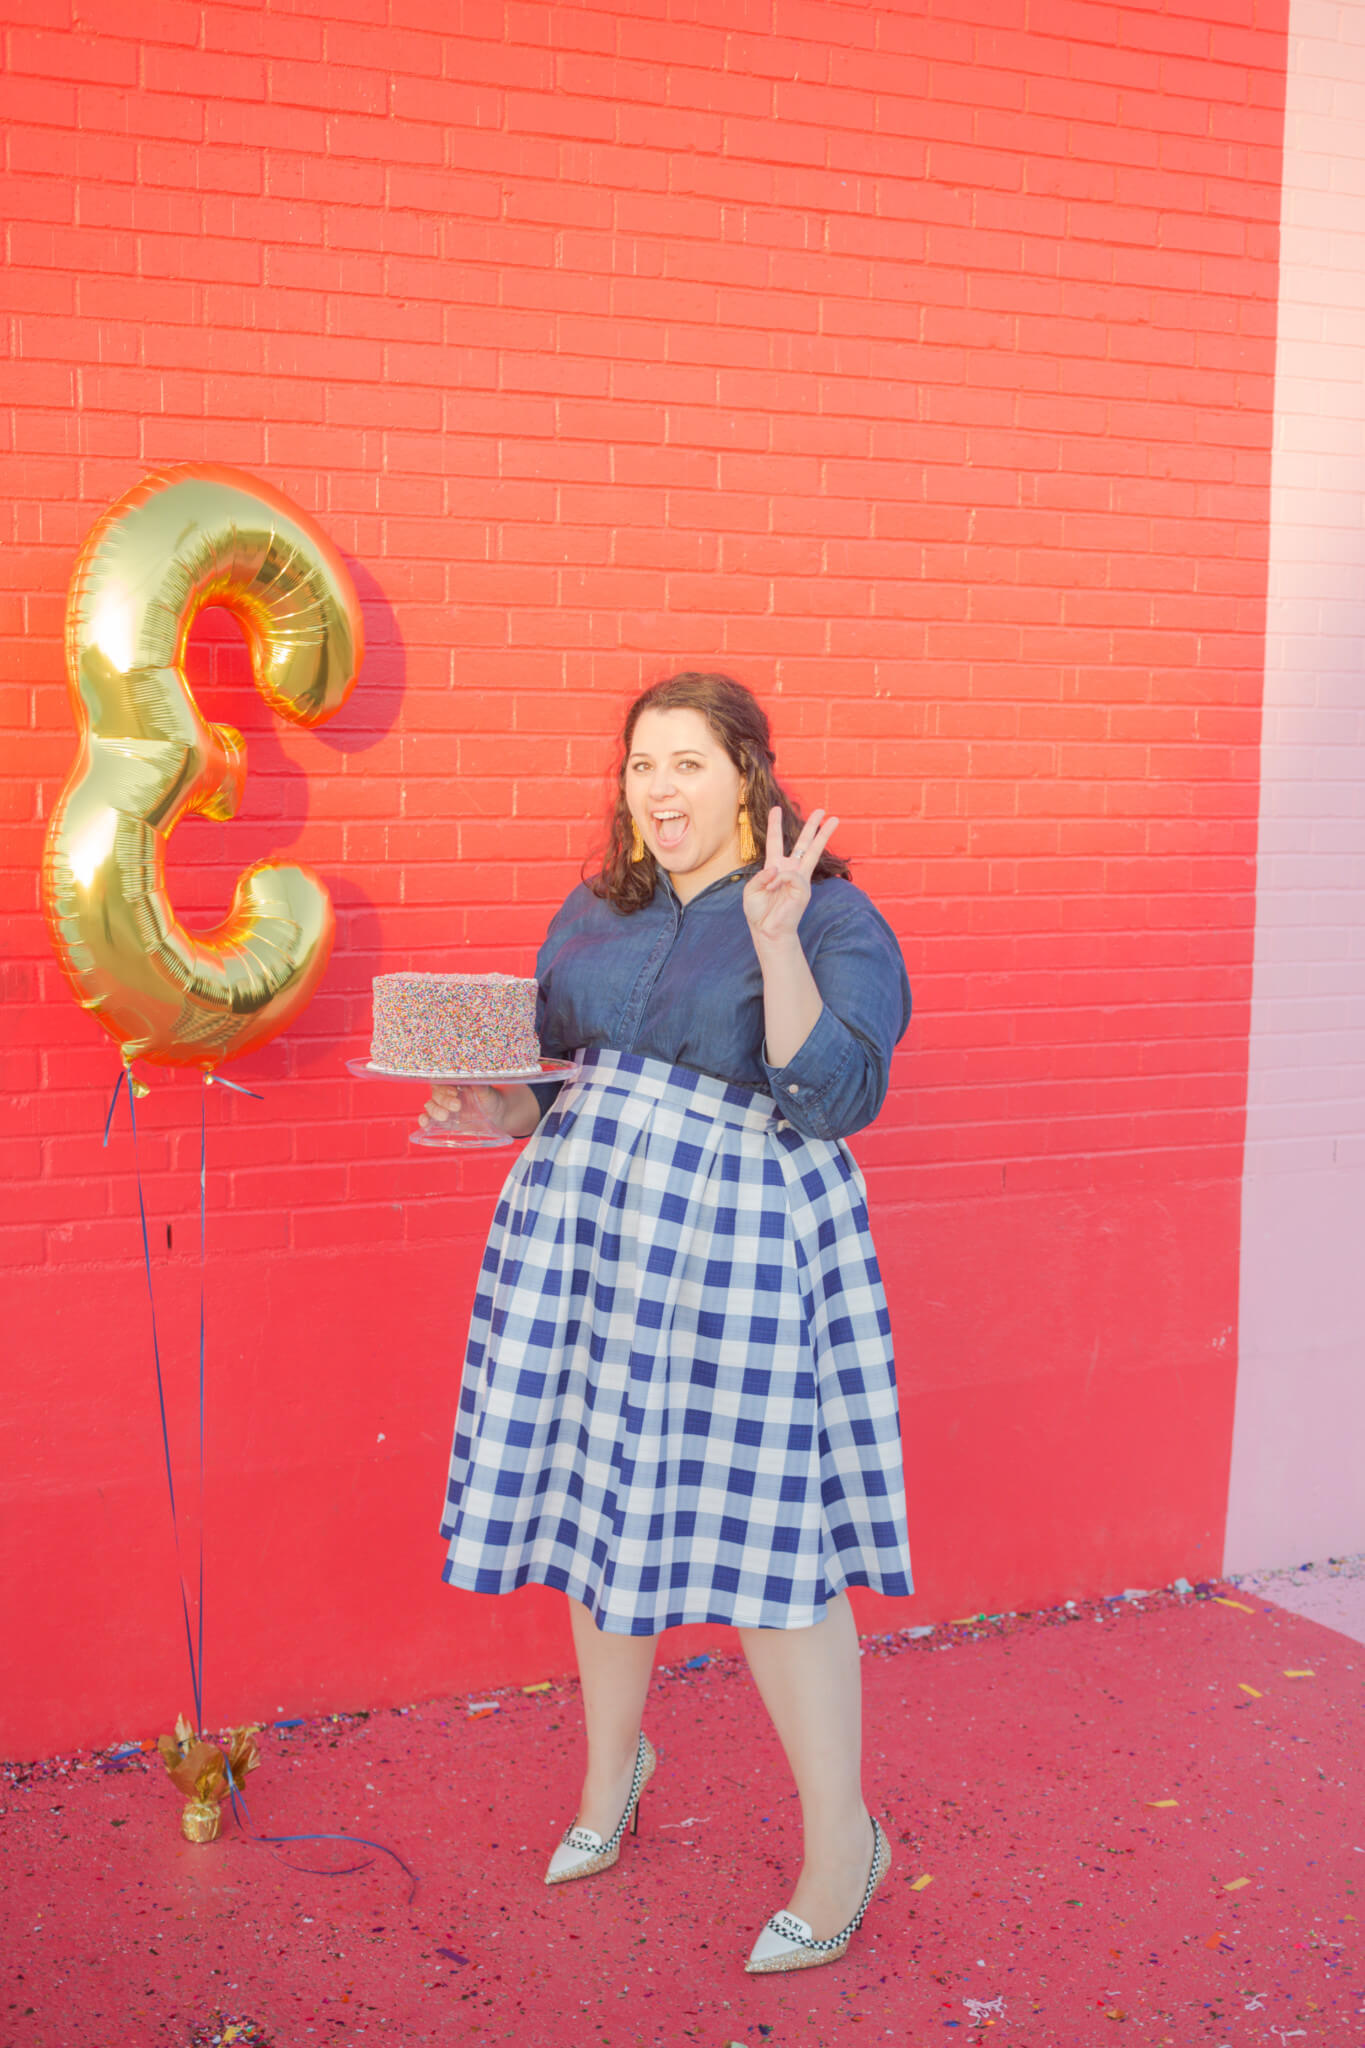 SGSB is 3 years old! I'm celebrating in an Eloquii gigham skirt, chambray top and Lisi Lerch tassel earrings. | Something Gold, Something Blue a curvy fashion blog by Emily Bastedo